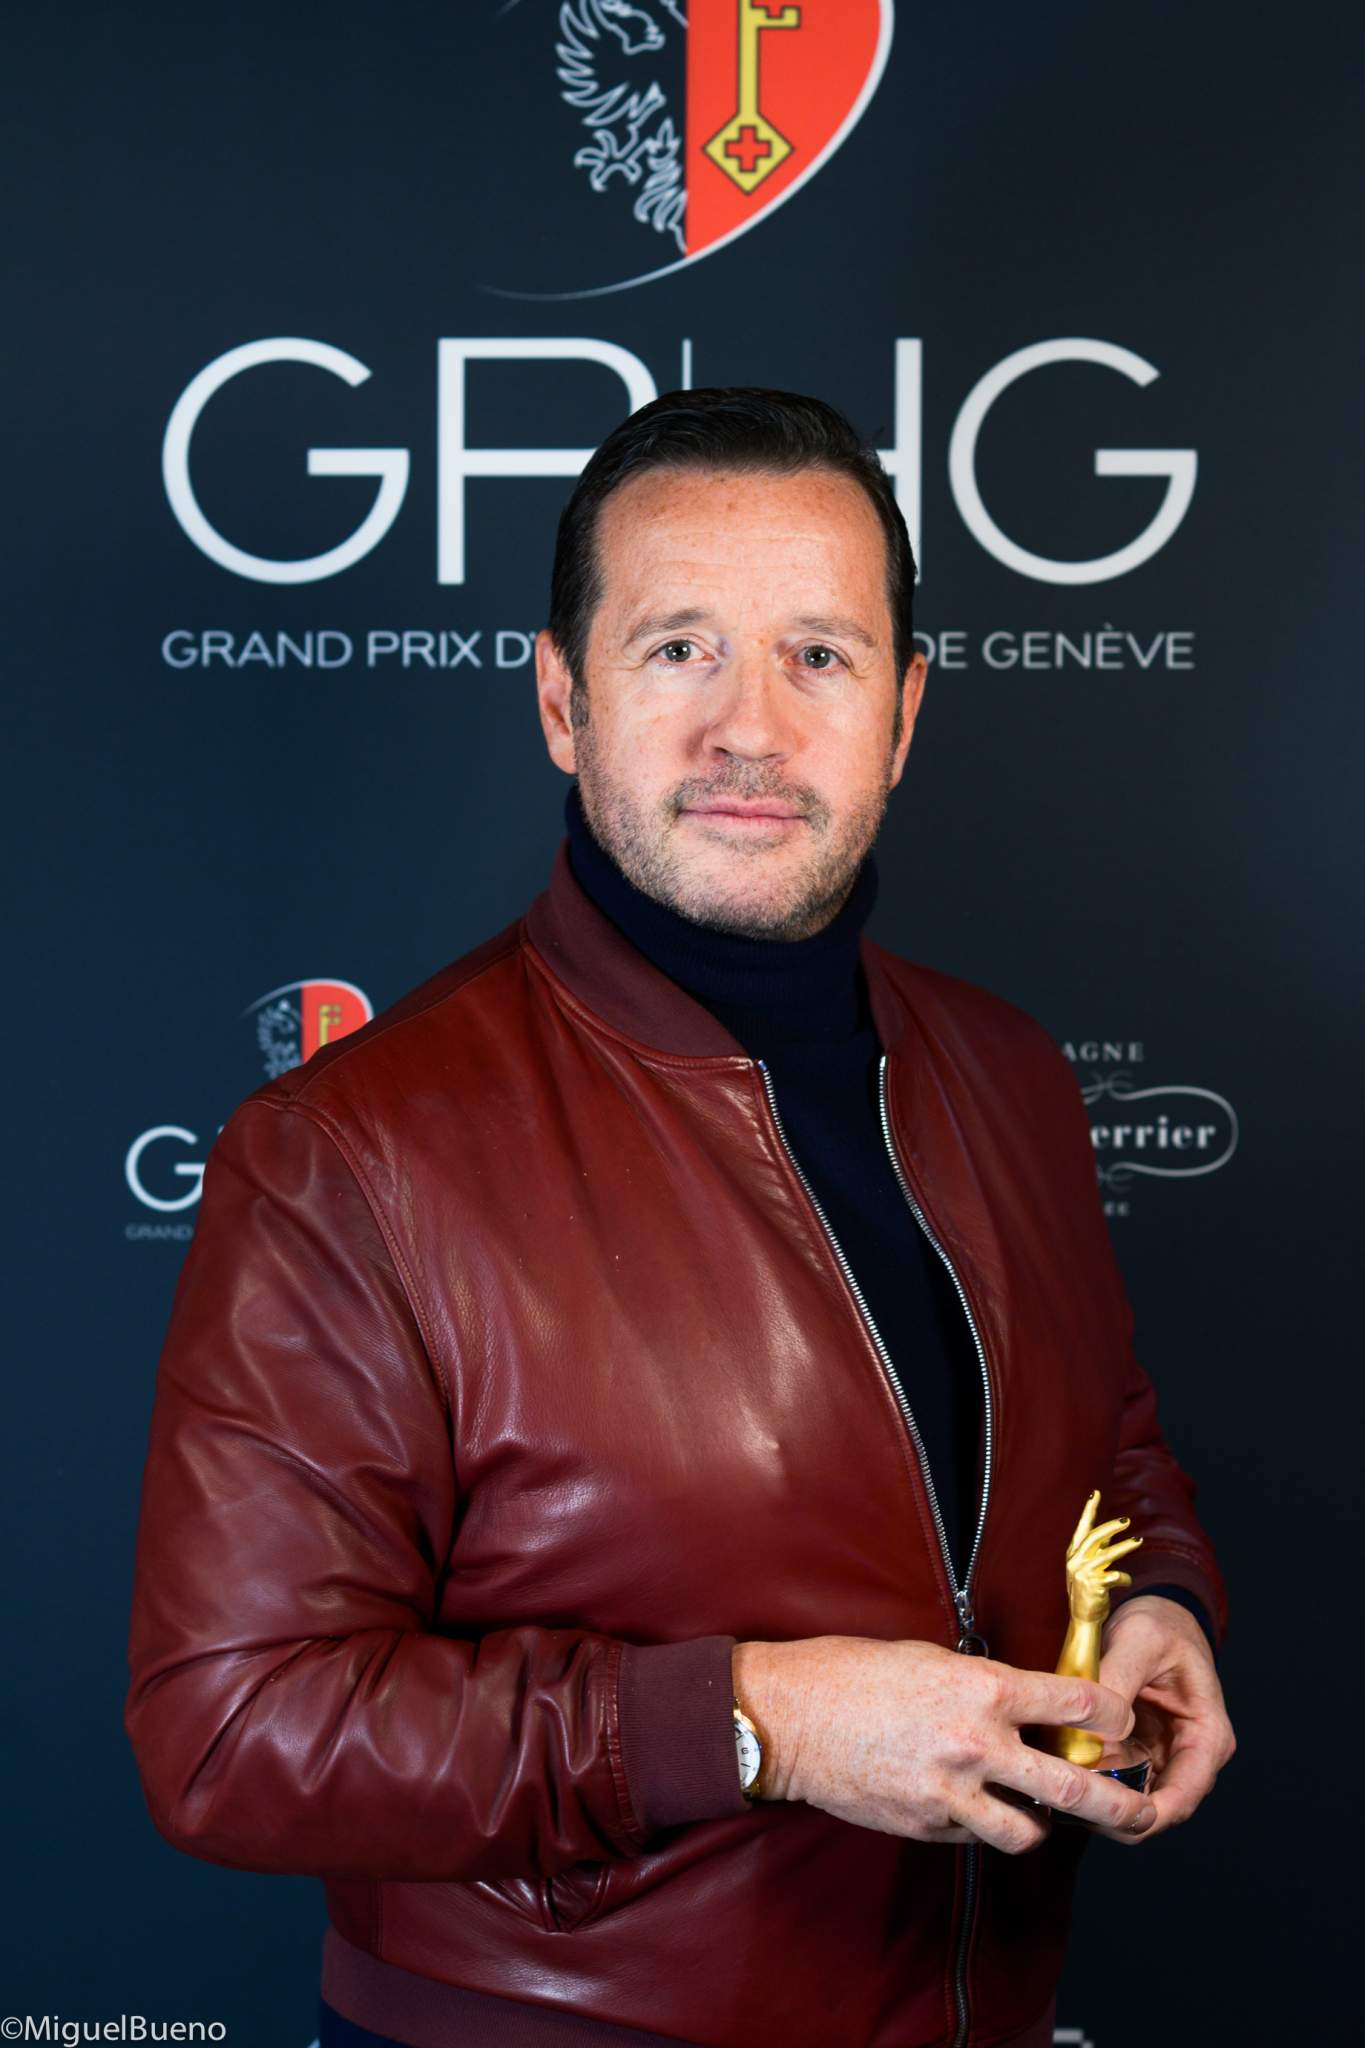 CEO of Audemars Piguet, winner of the Men's Complication Watch Prize